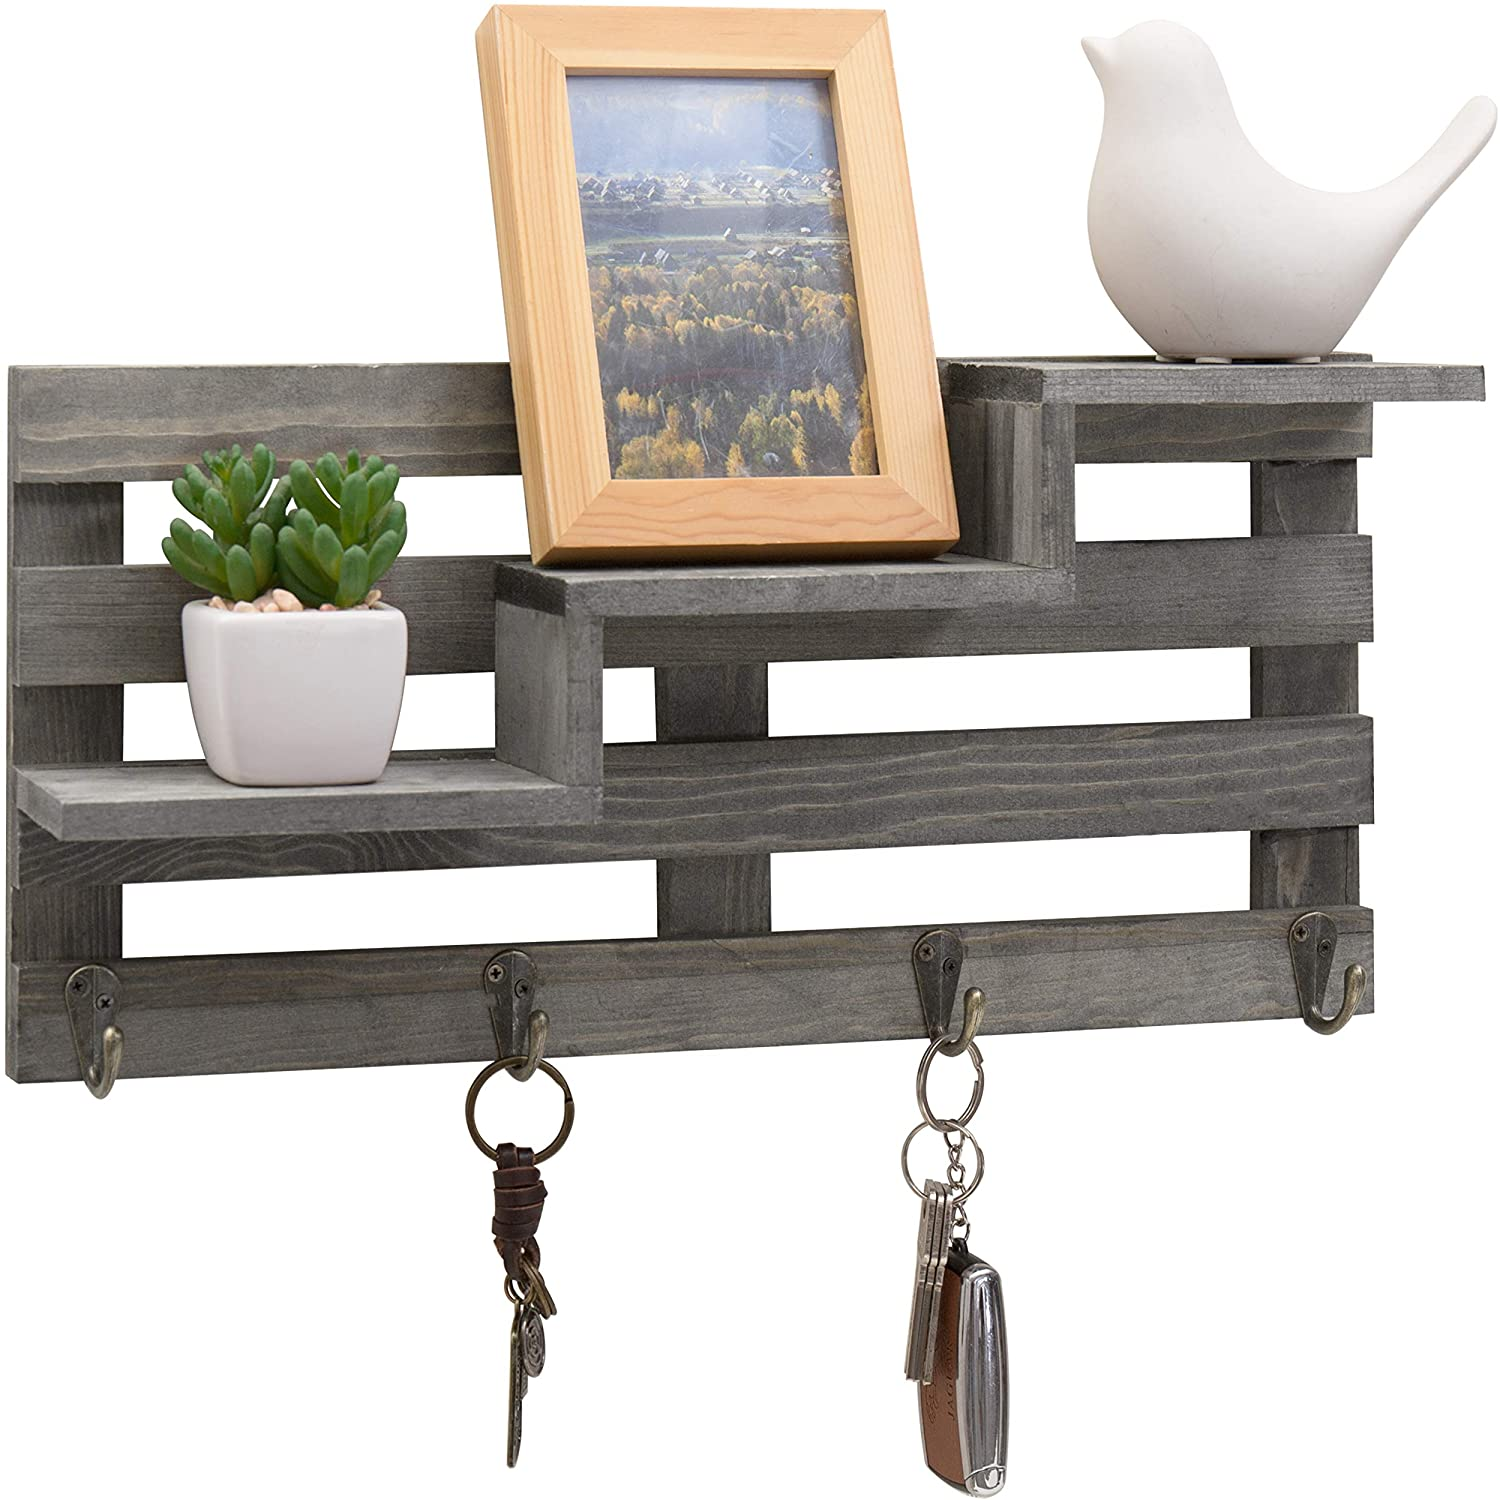 8-10 best key holders for wall